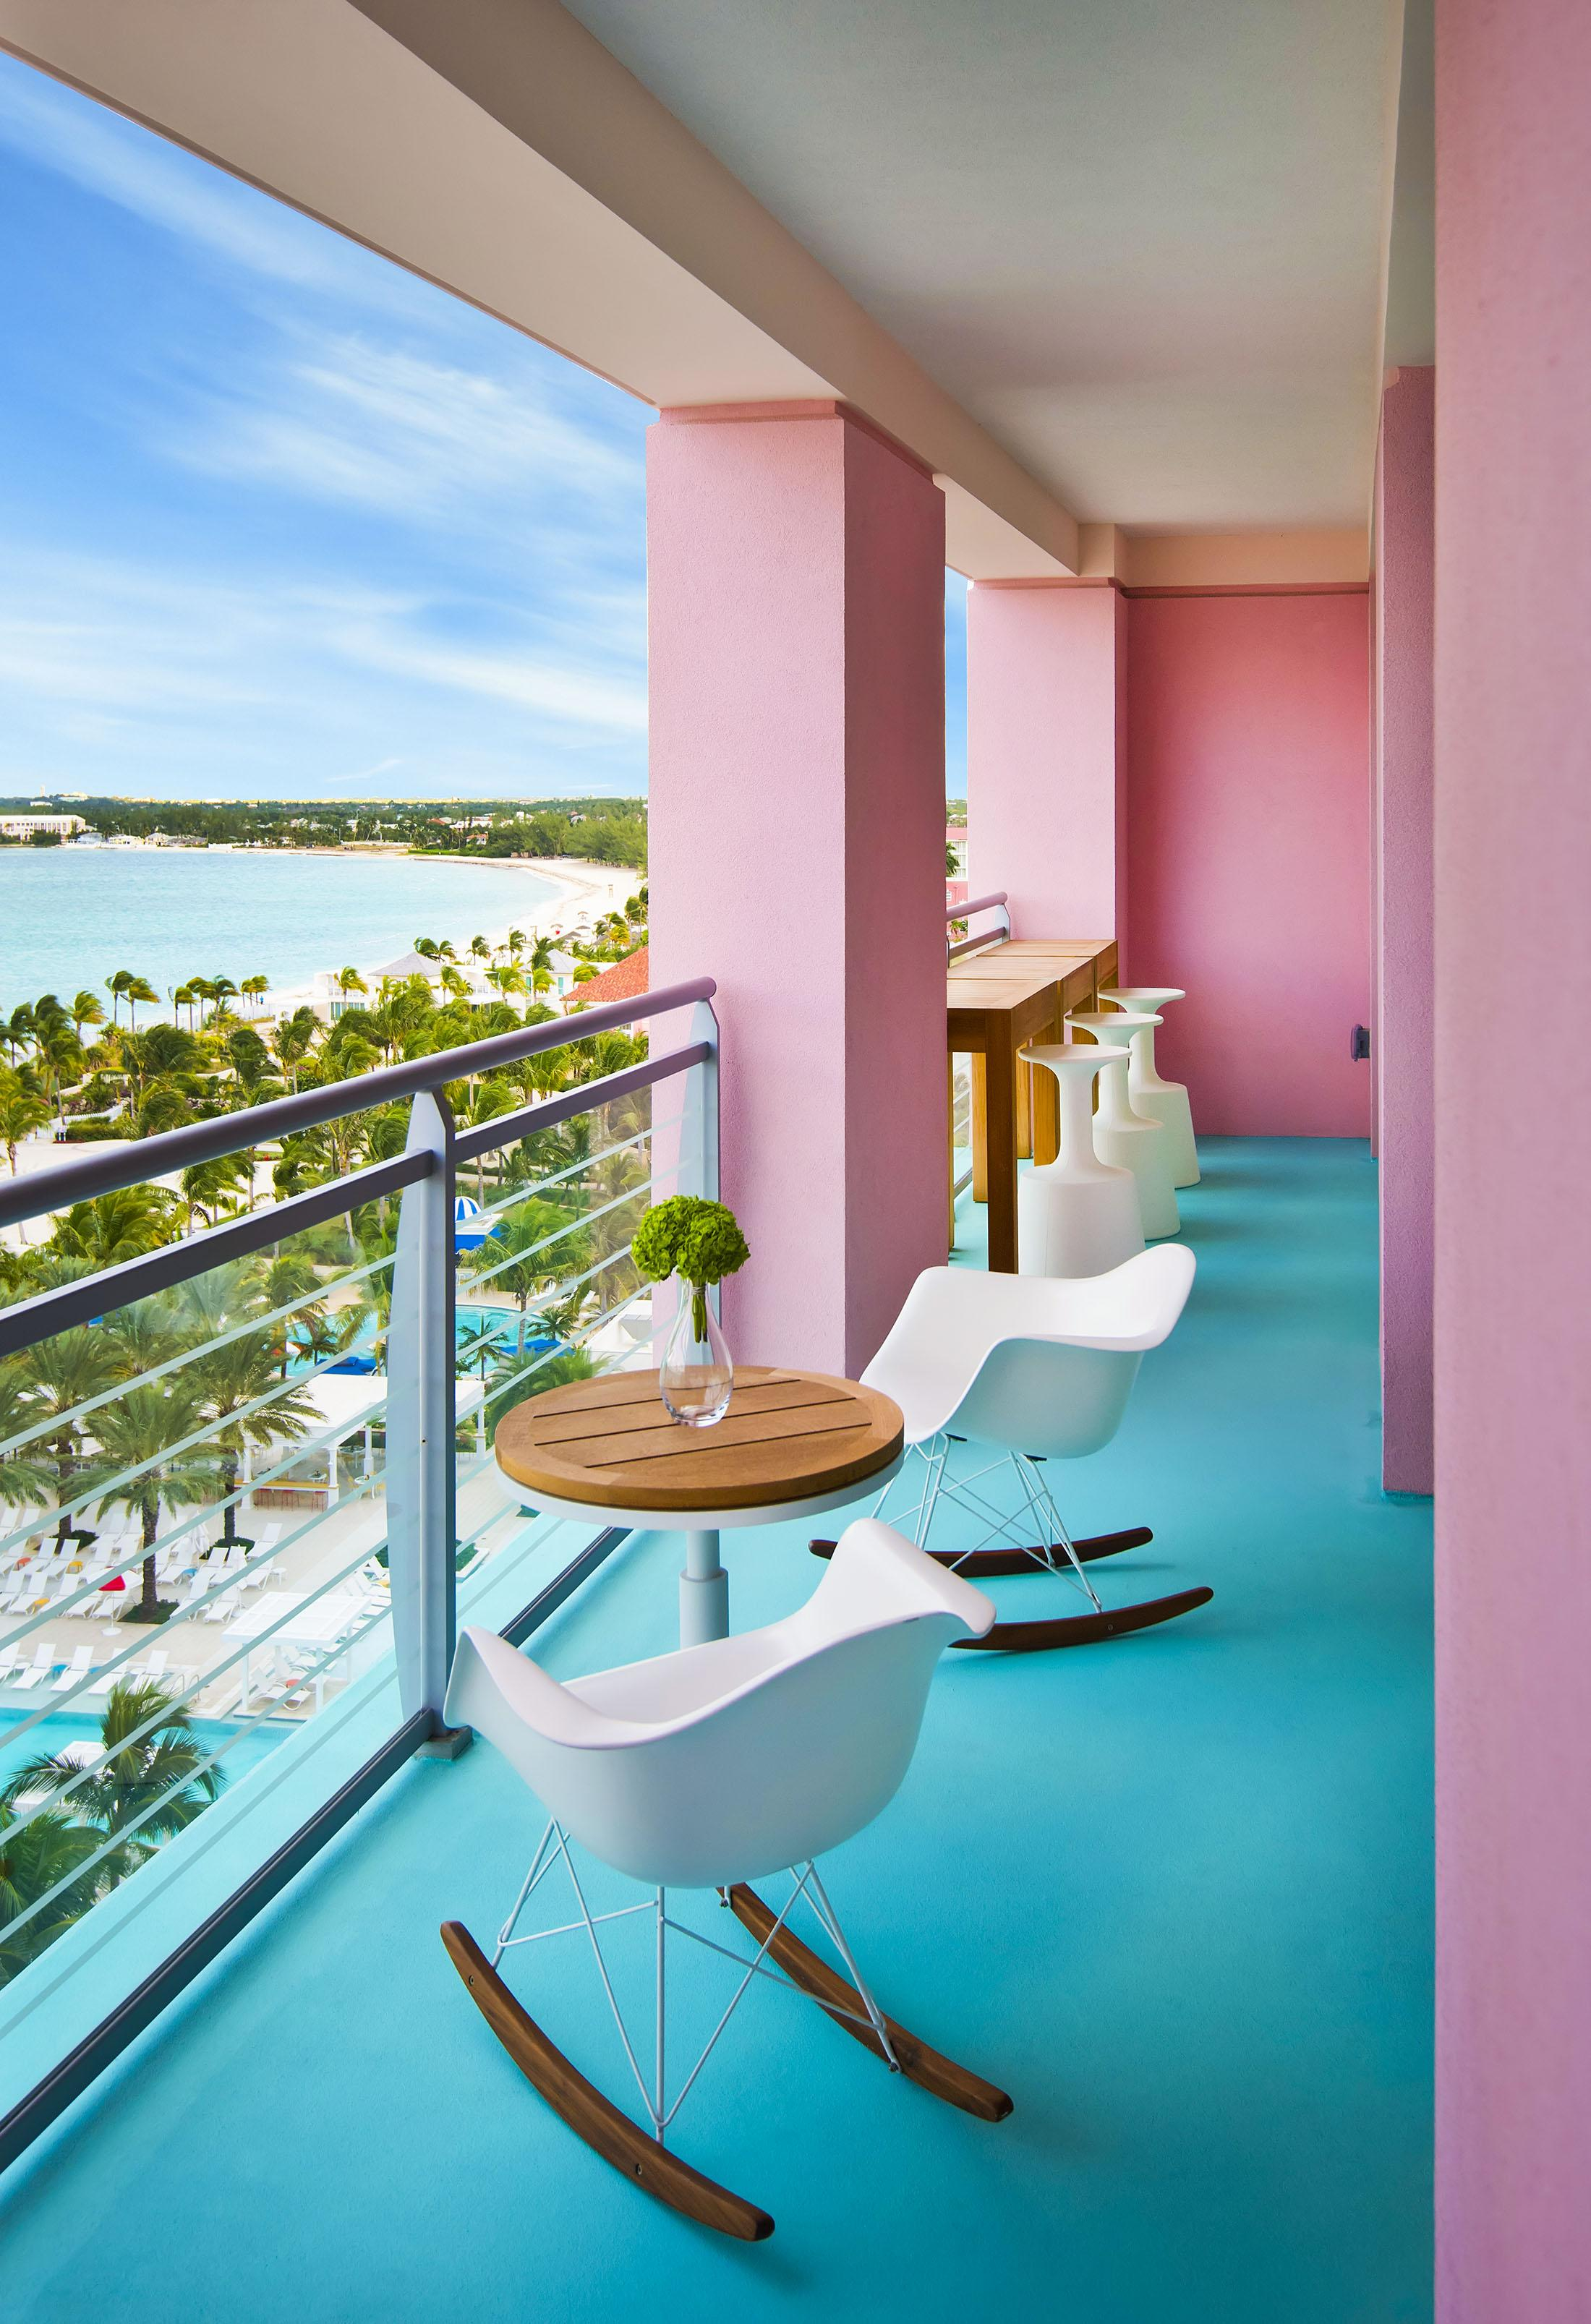 A brightly colored patio overlooking the beach.